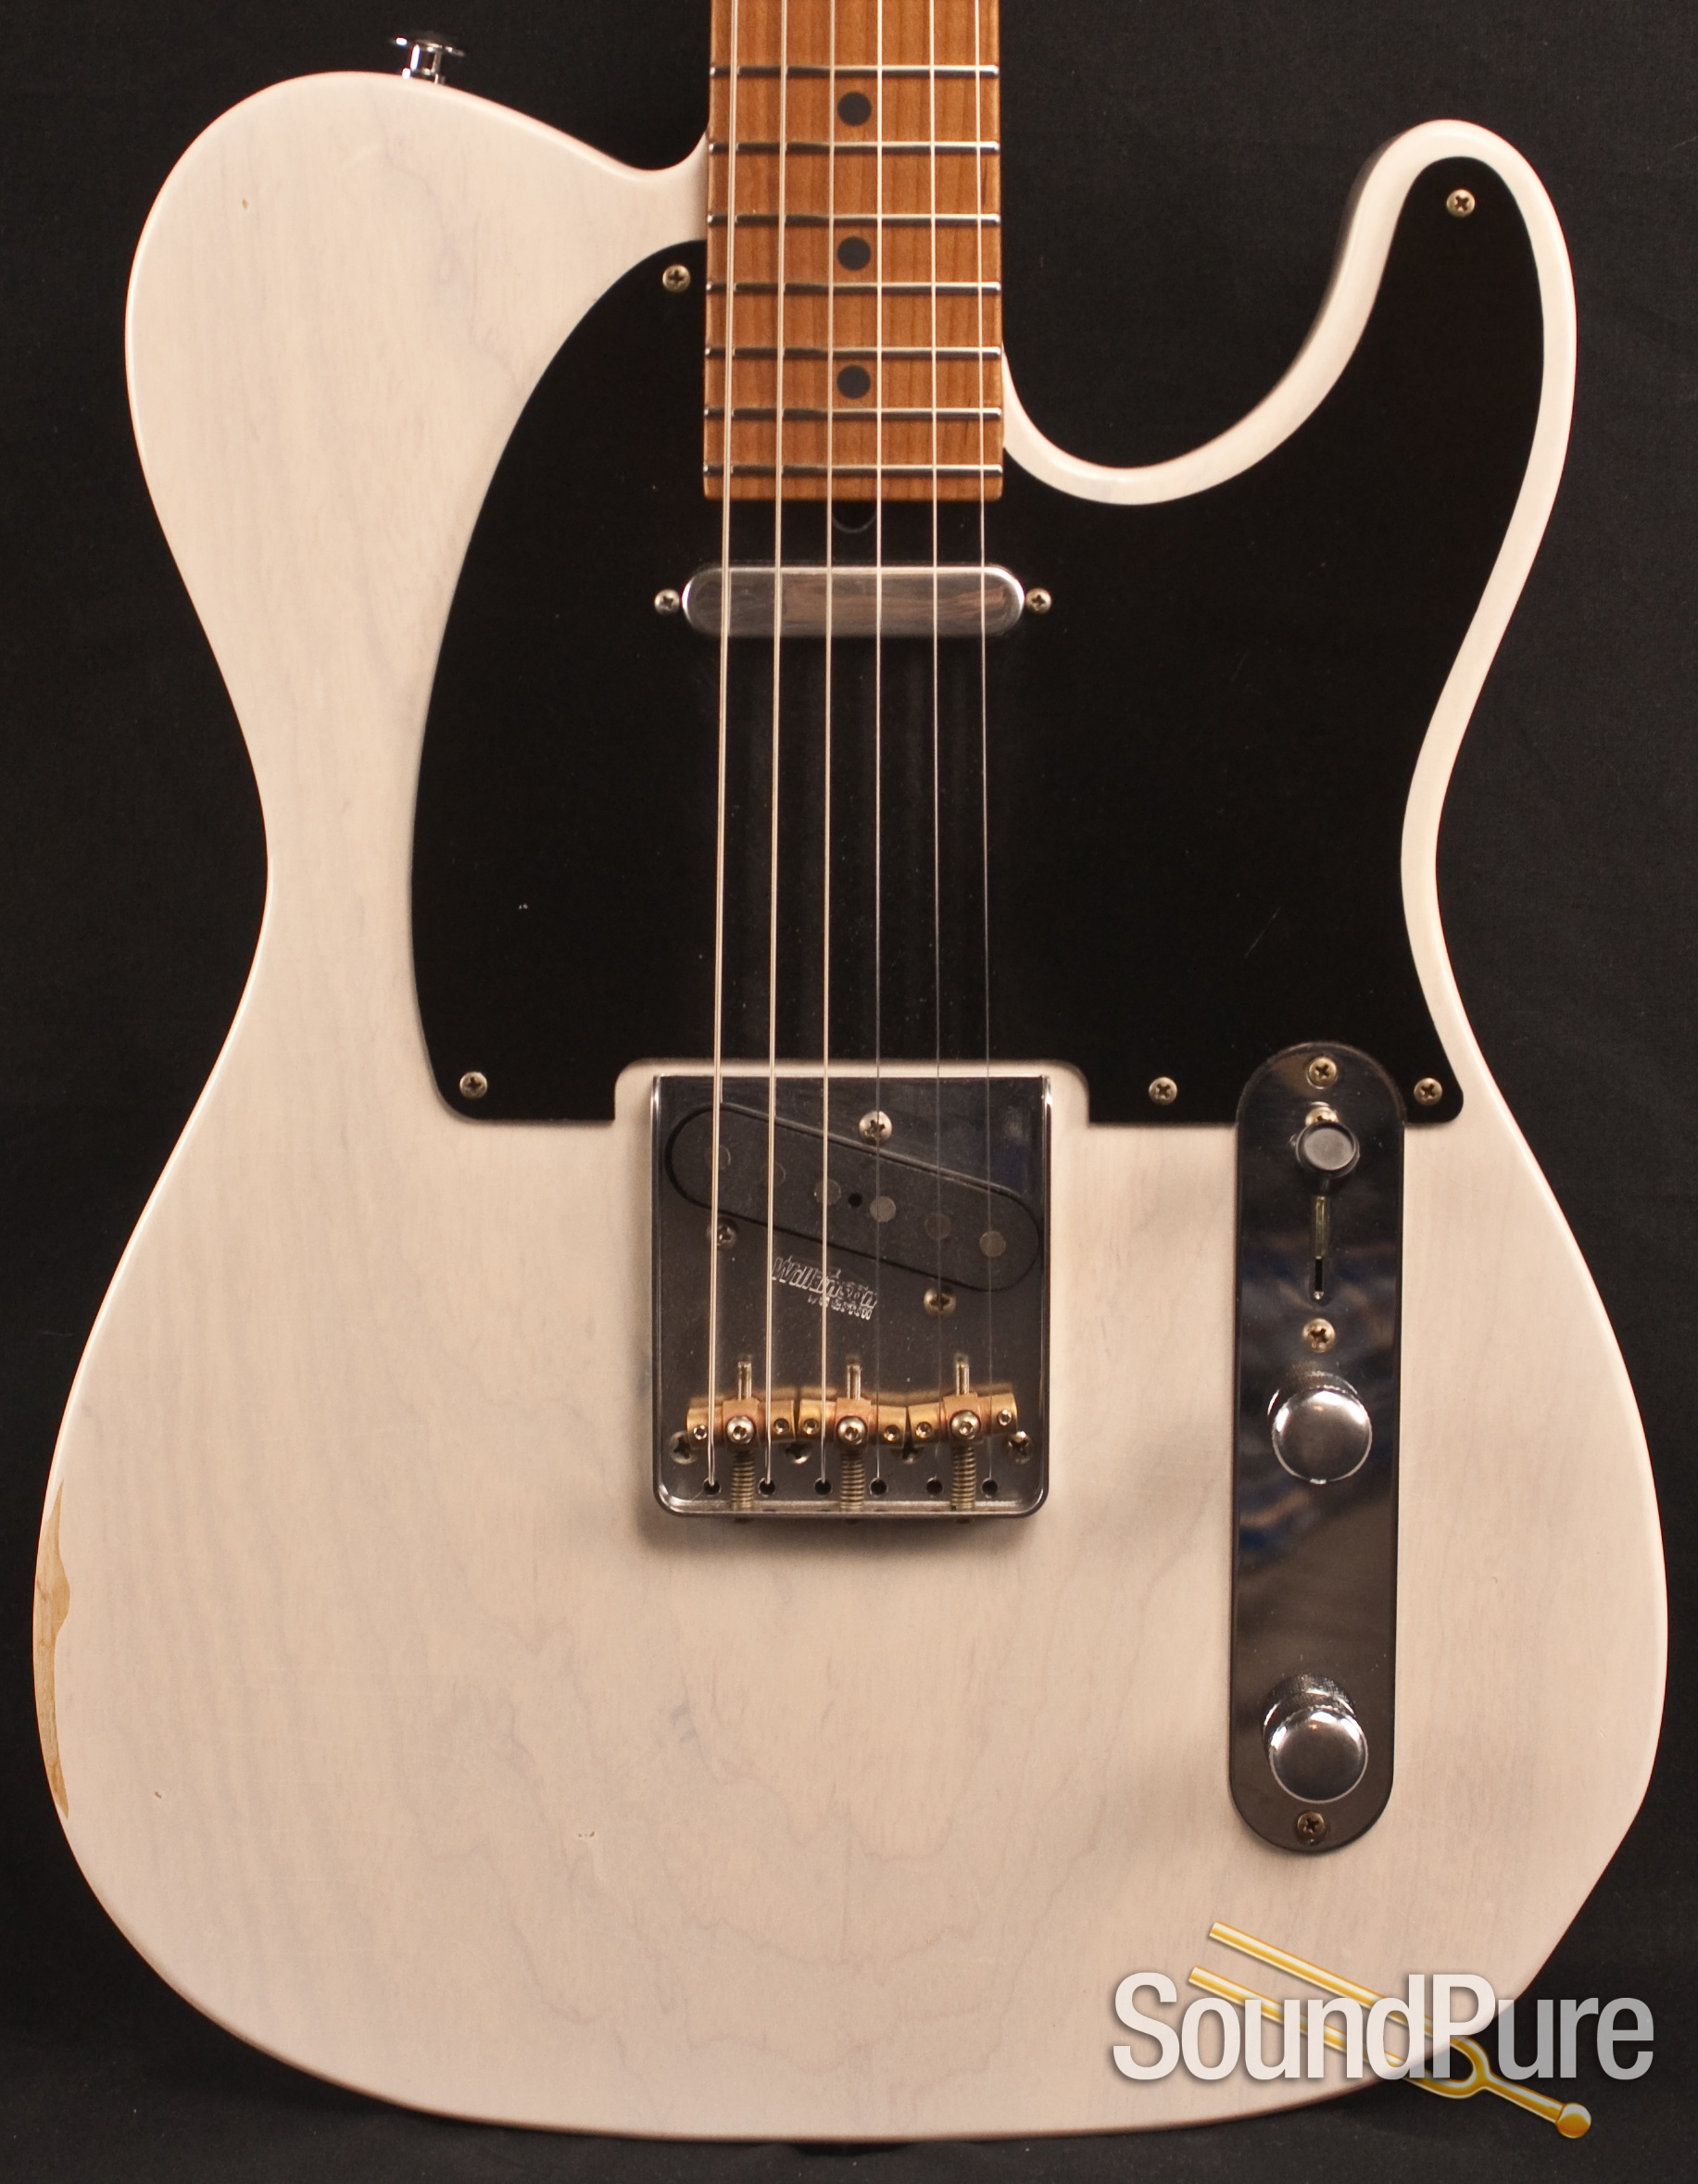 Suhr Classic T Antique Mary Kay White Electric Guitar 22371 Pick Up Strat Wiring Diagram Questions About What You See Want More Information Photos Or Just A Friendly Conversation With Someone That Cares And Who Has Actually Had Their Hands On